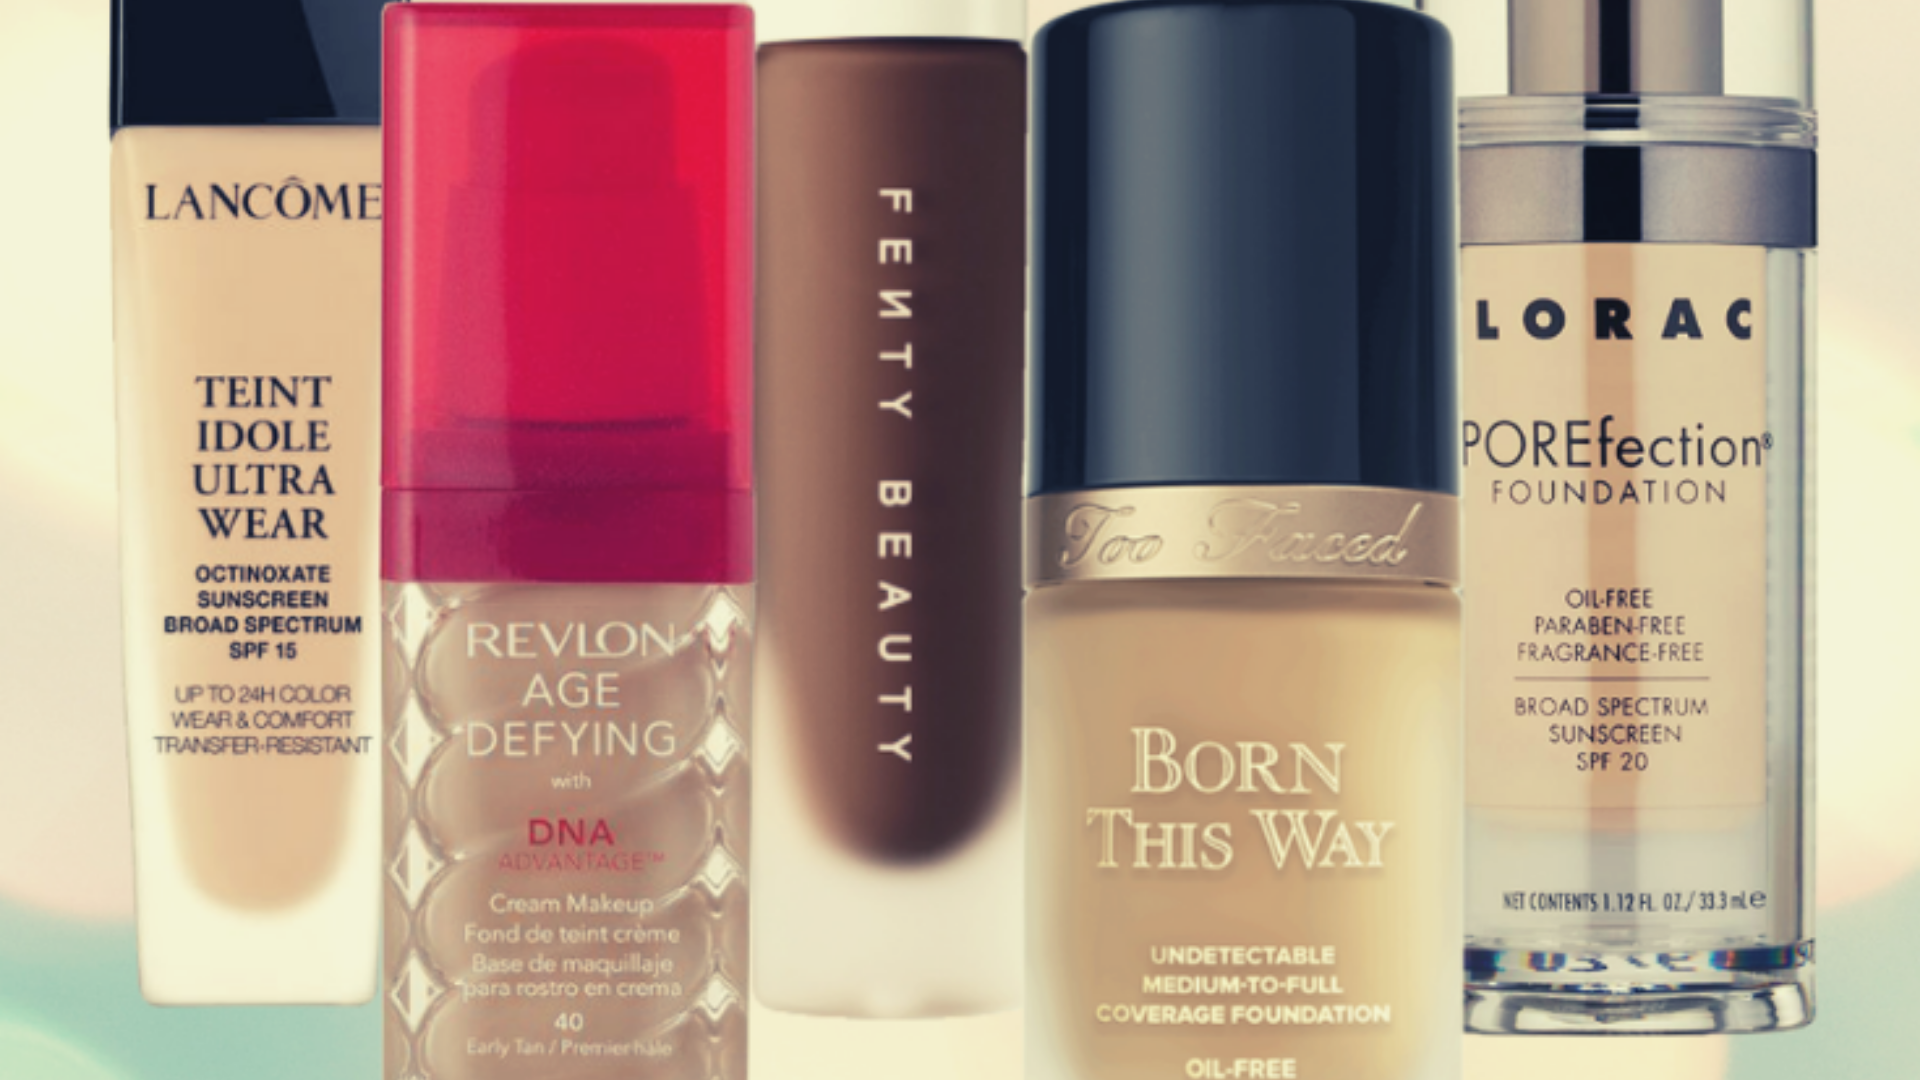 The Best Foundation for Women Over 11 Will Make Your Skin Glow